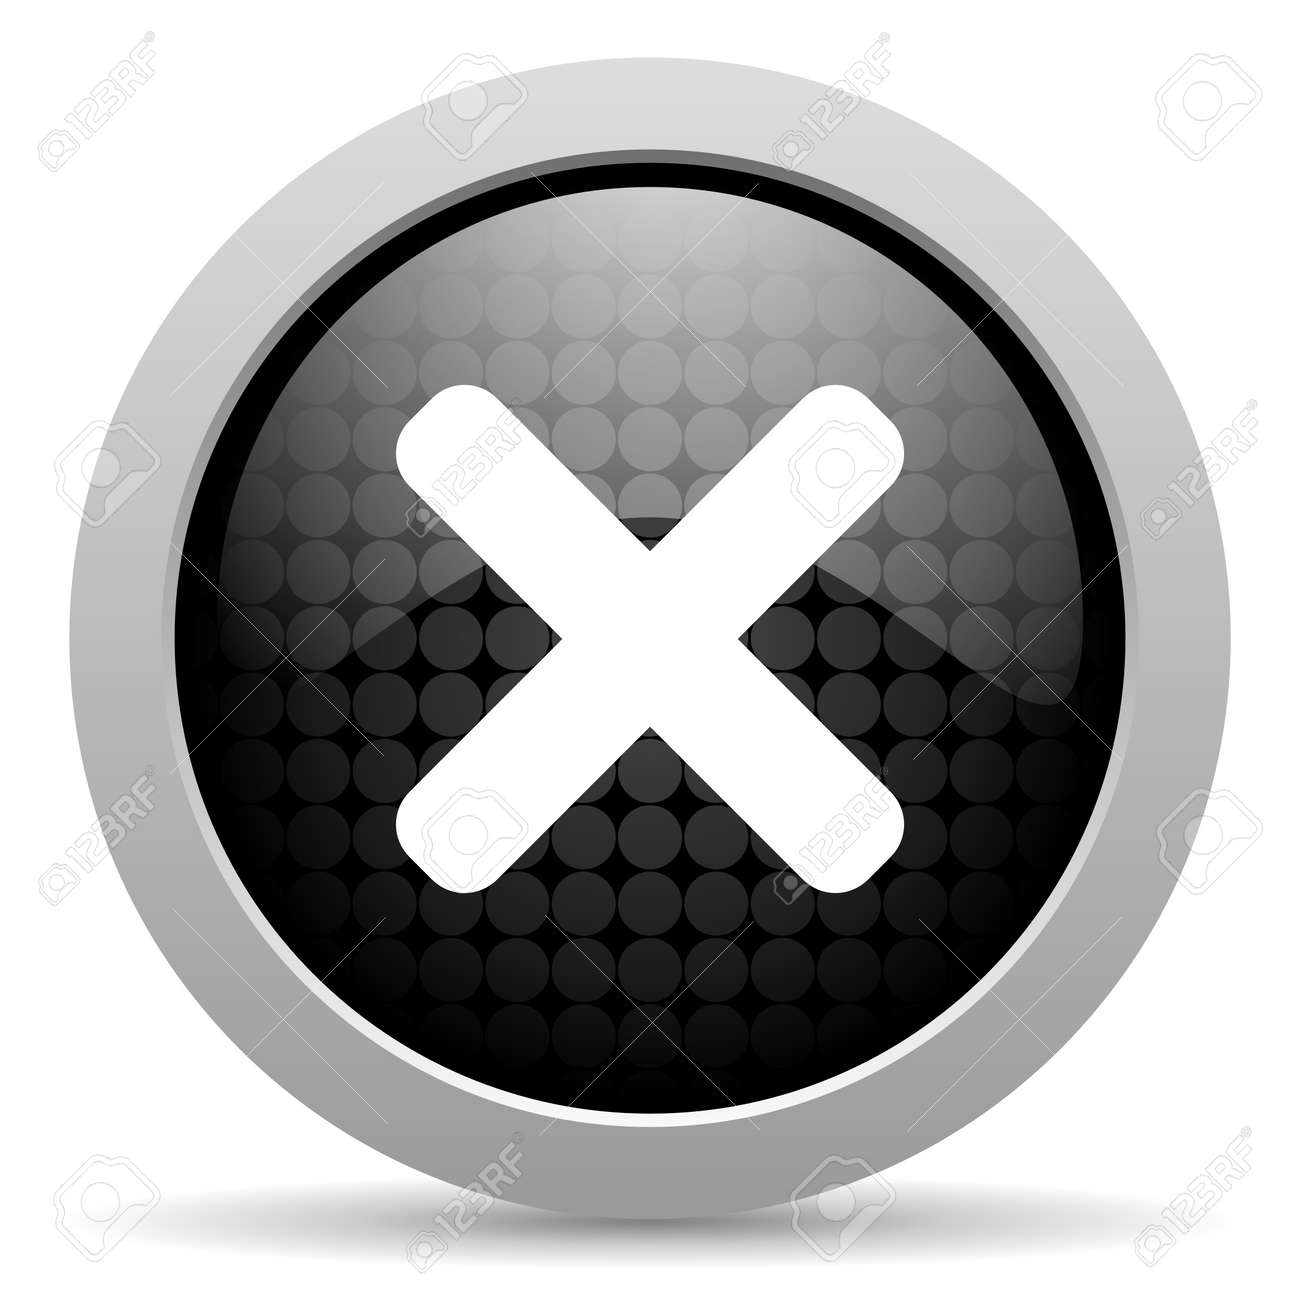 cancel black circle web glossy icon Stock Photo - 19347465